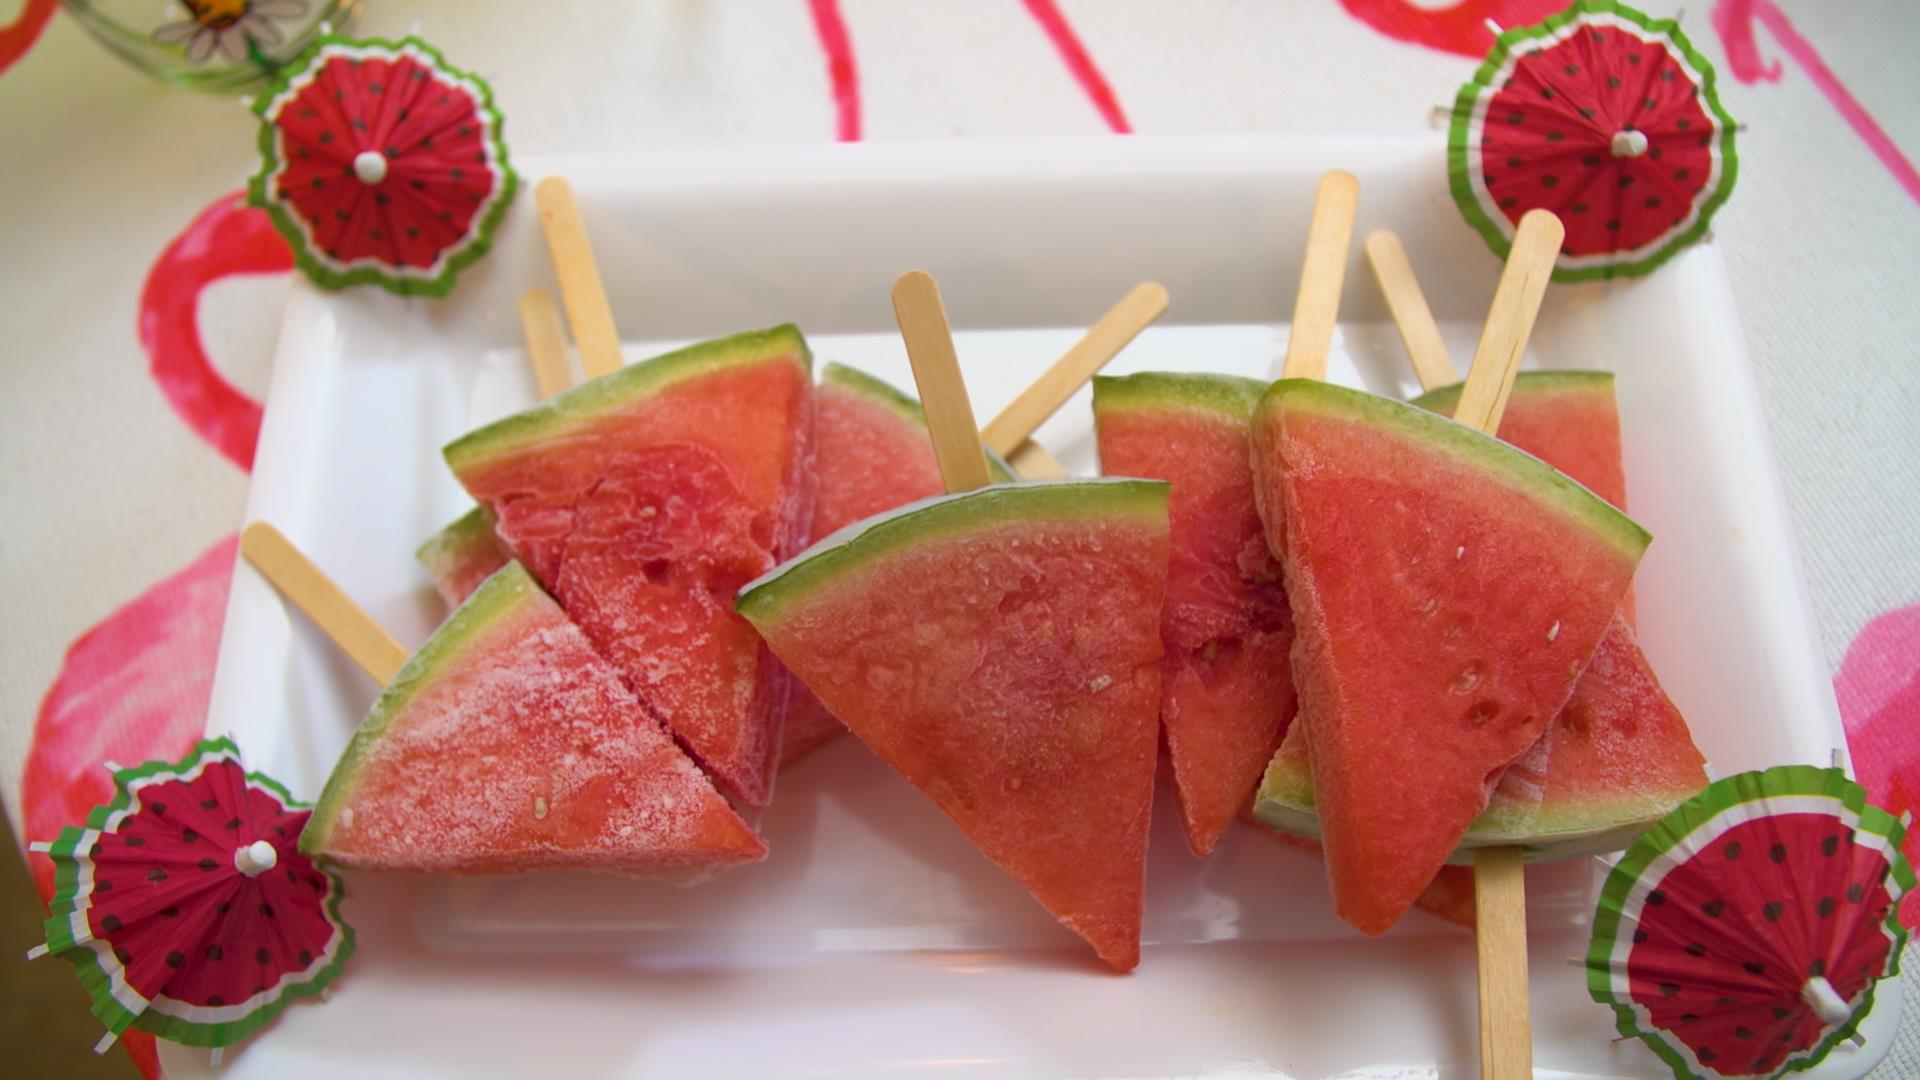 Watermelon margarita popsicles — plus 4 other summer cocktail hacks